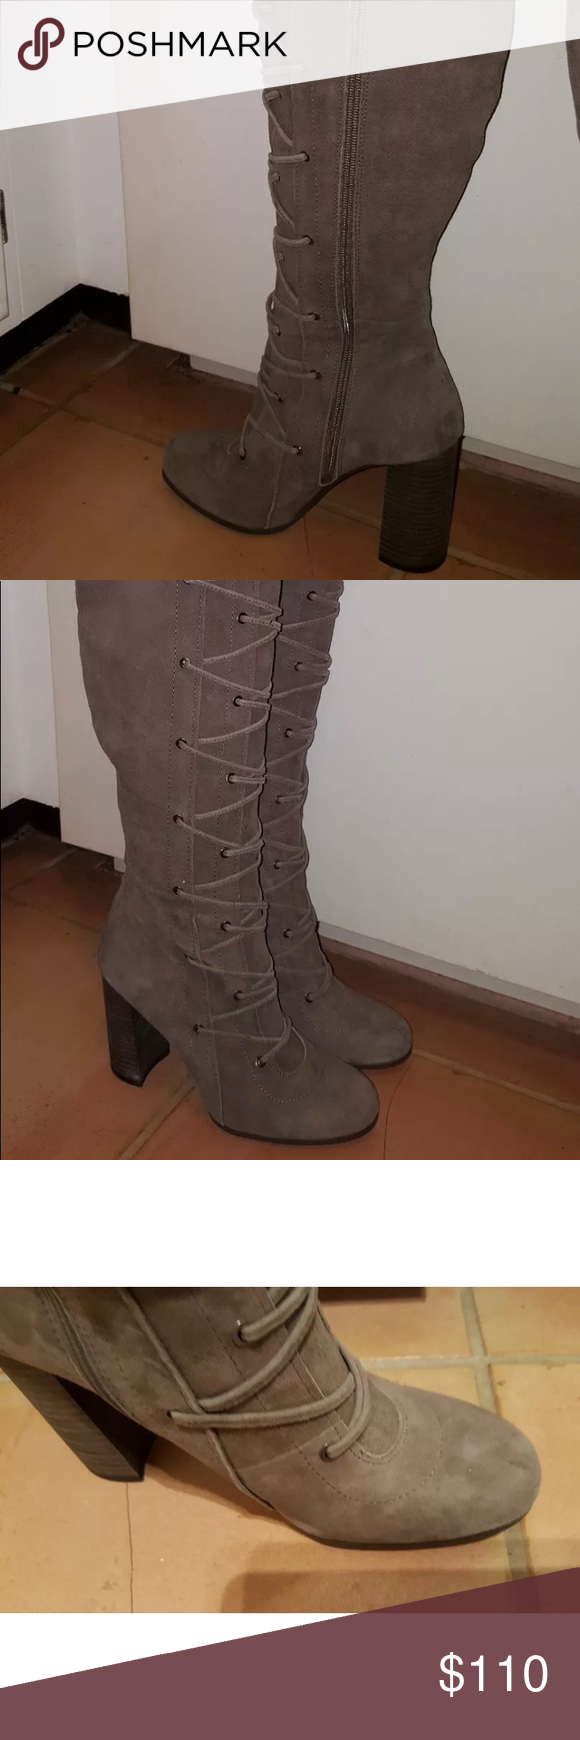 25c75e505ae Vince Camuto Thanta Tan Suede Lace up Boots SEO Brand new with tags Zips up  in